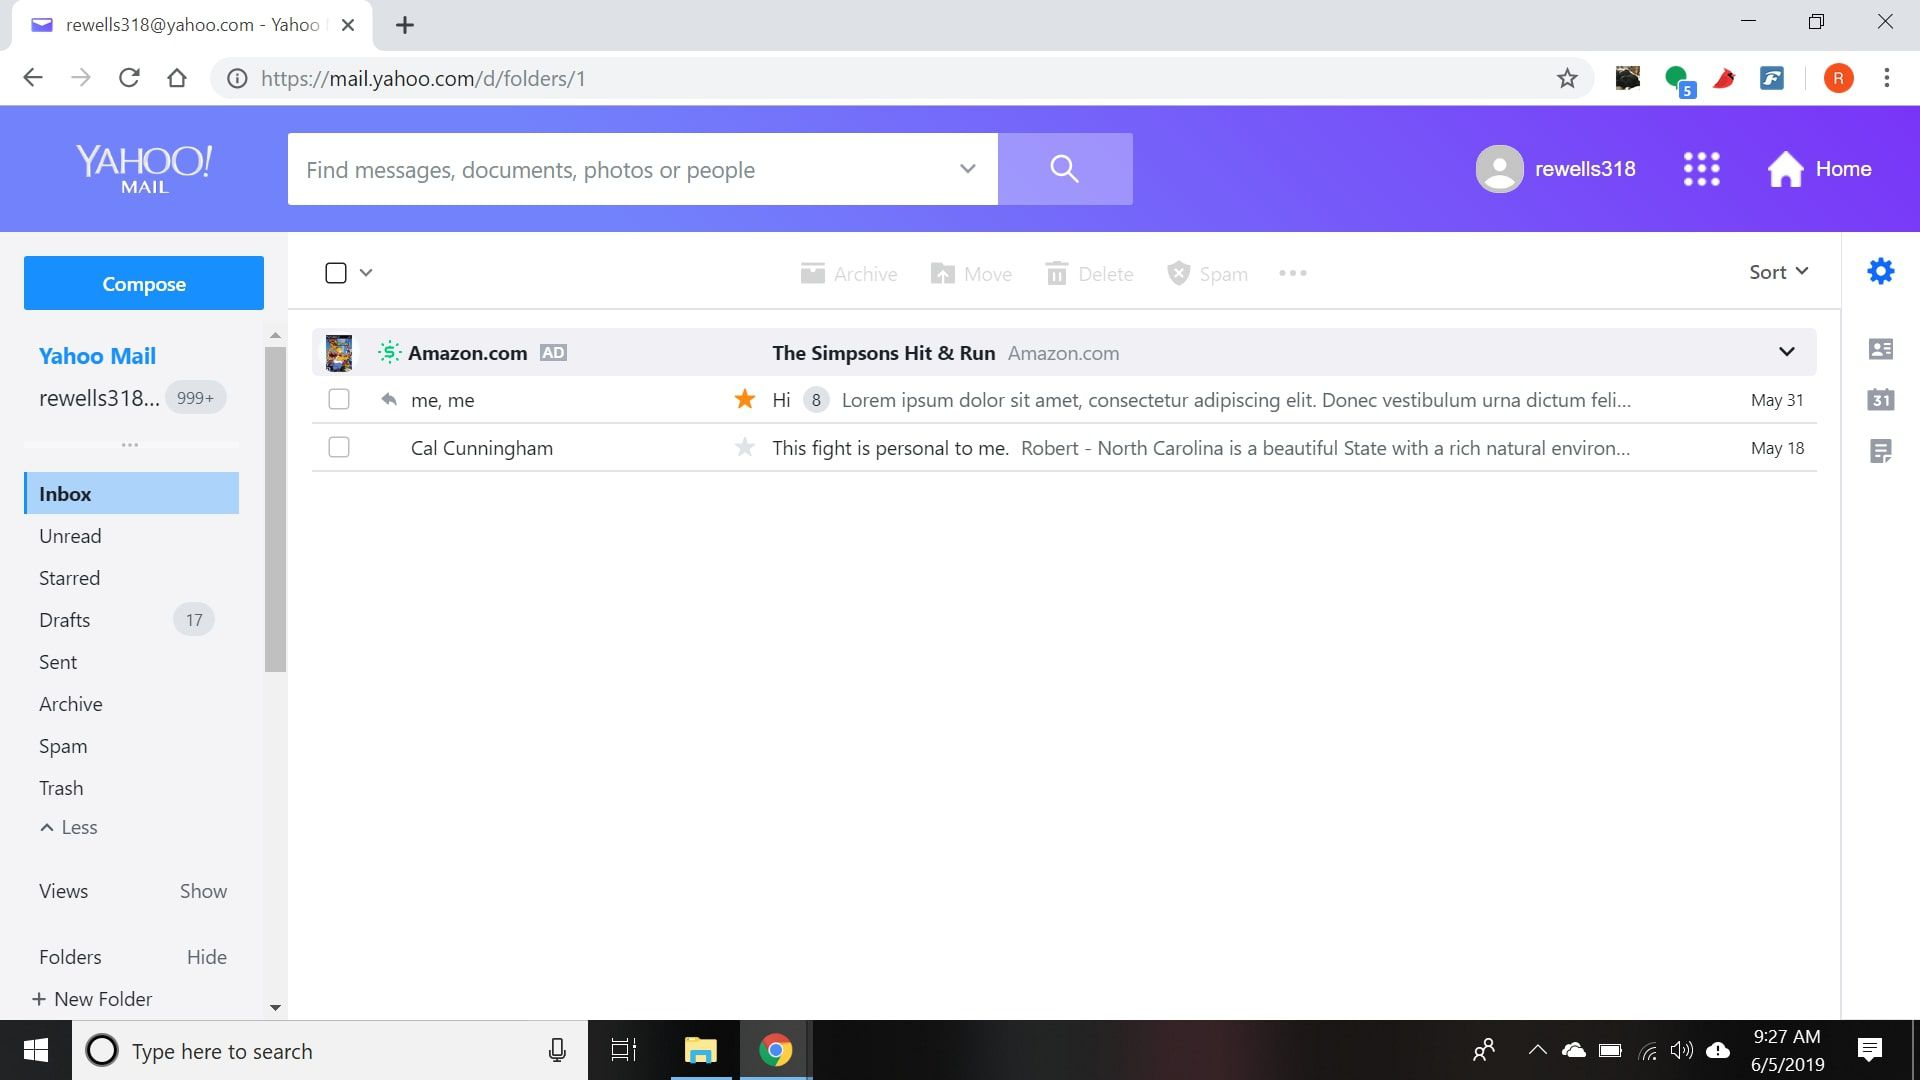 Enable or Disable Conversation View in Yahoo Mail